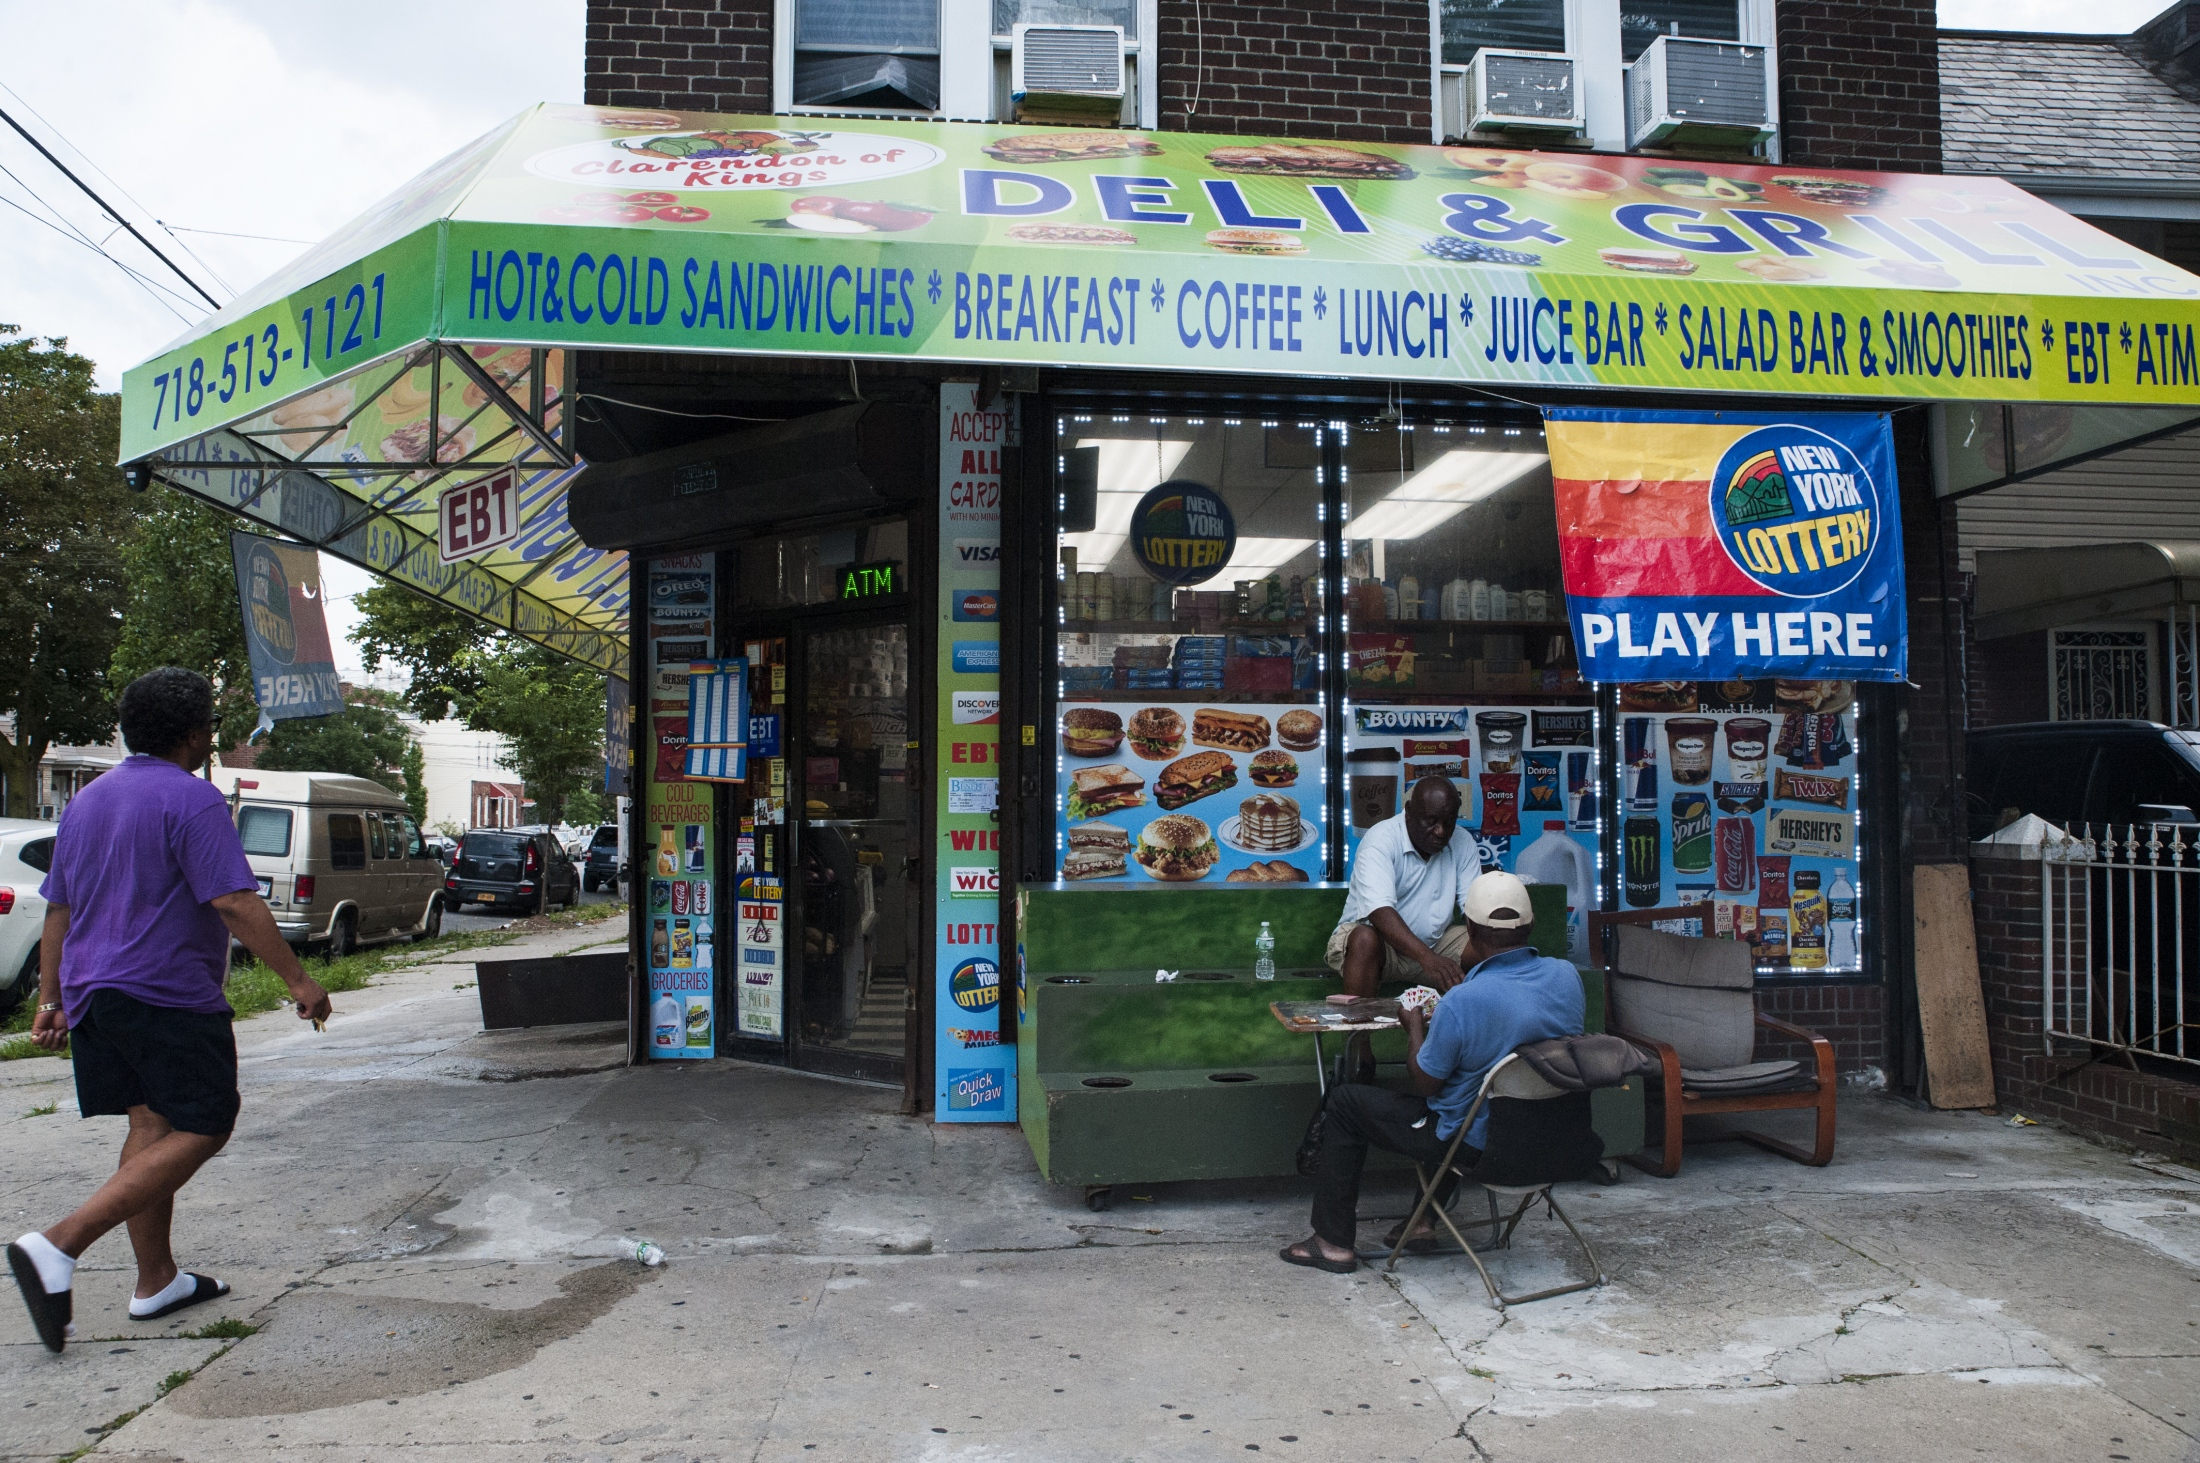 Men playing cards outside a deli on Brooklyn and Clarendon in Flatbush, New York, on July 28, 2018.